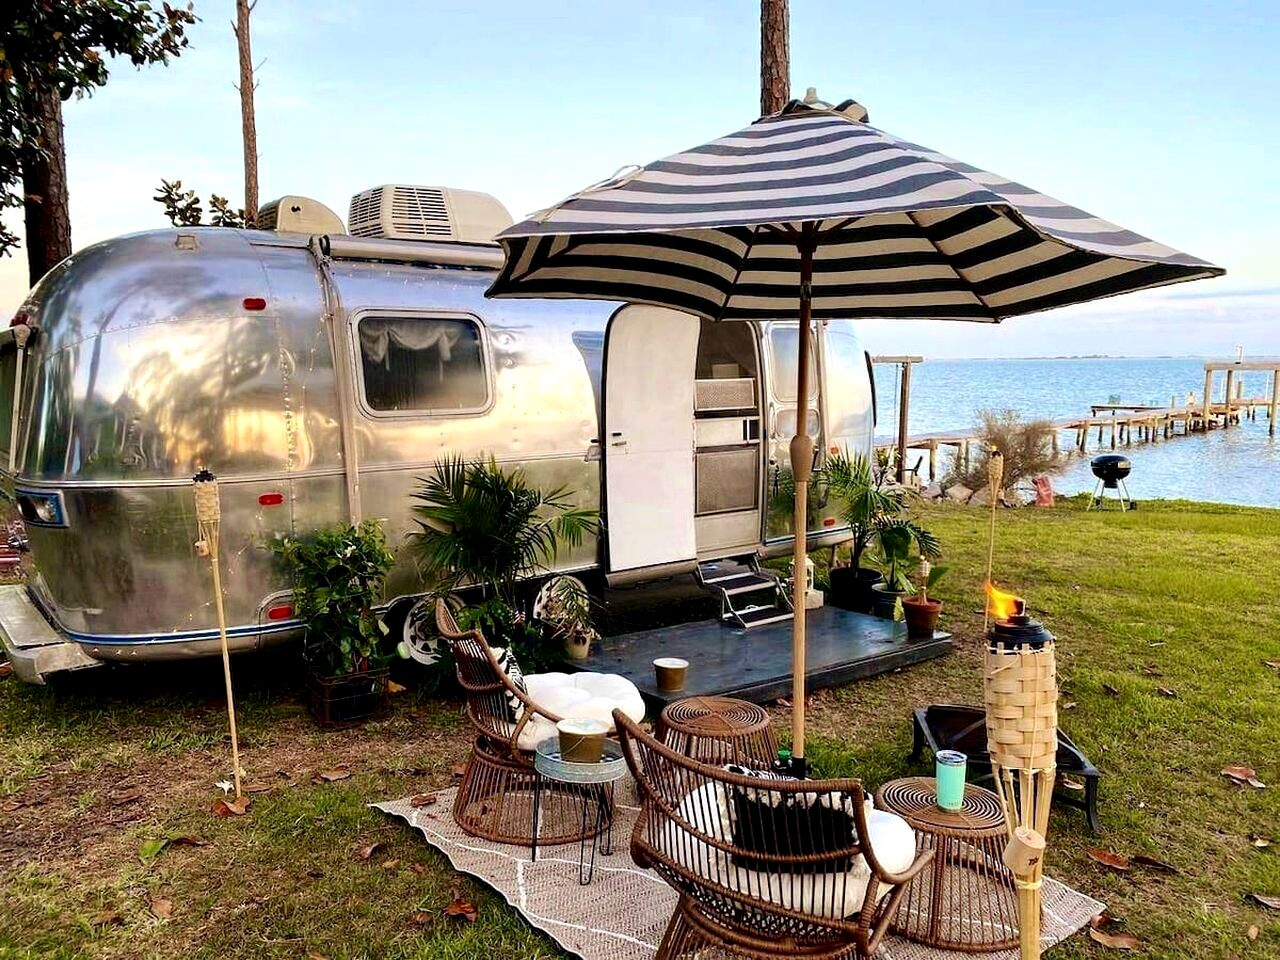 This fantastic 1972 Airstream is ideal for glamping in Florida